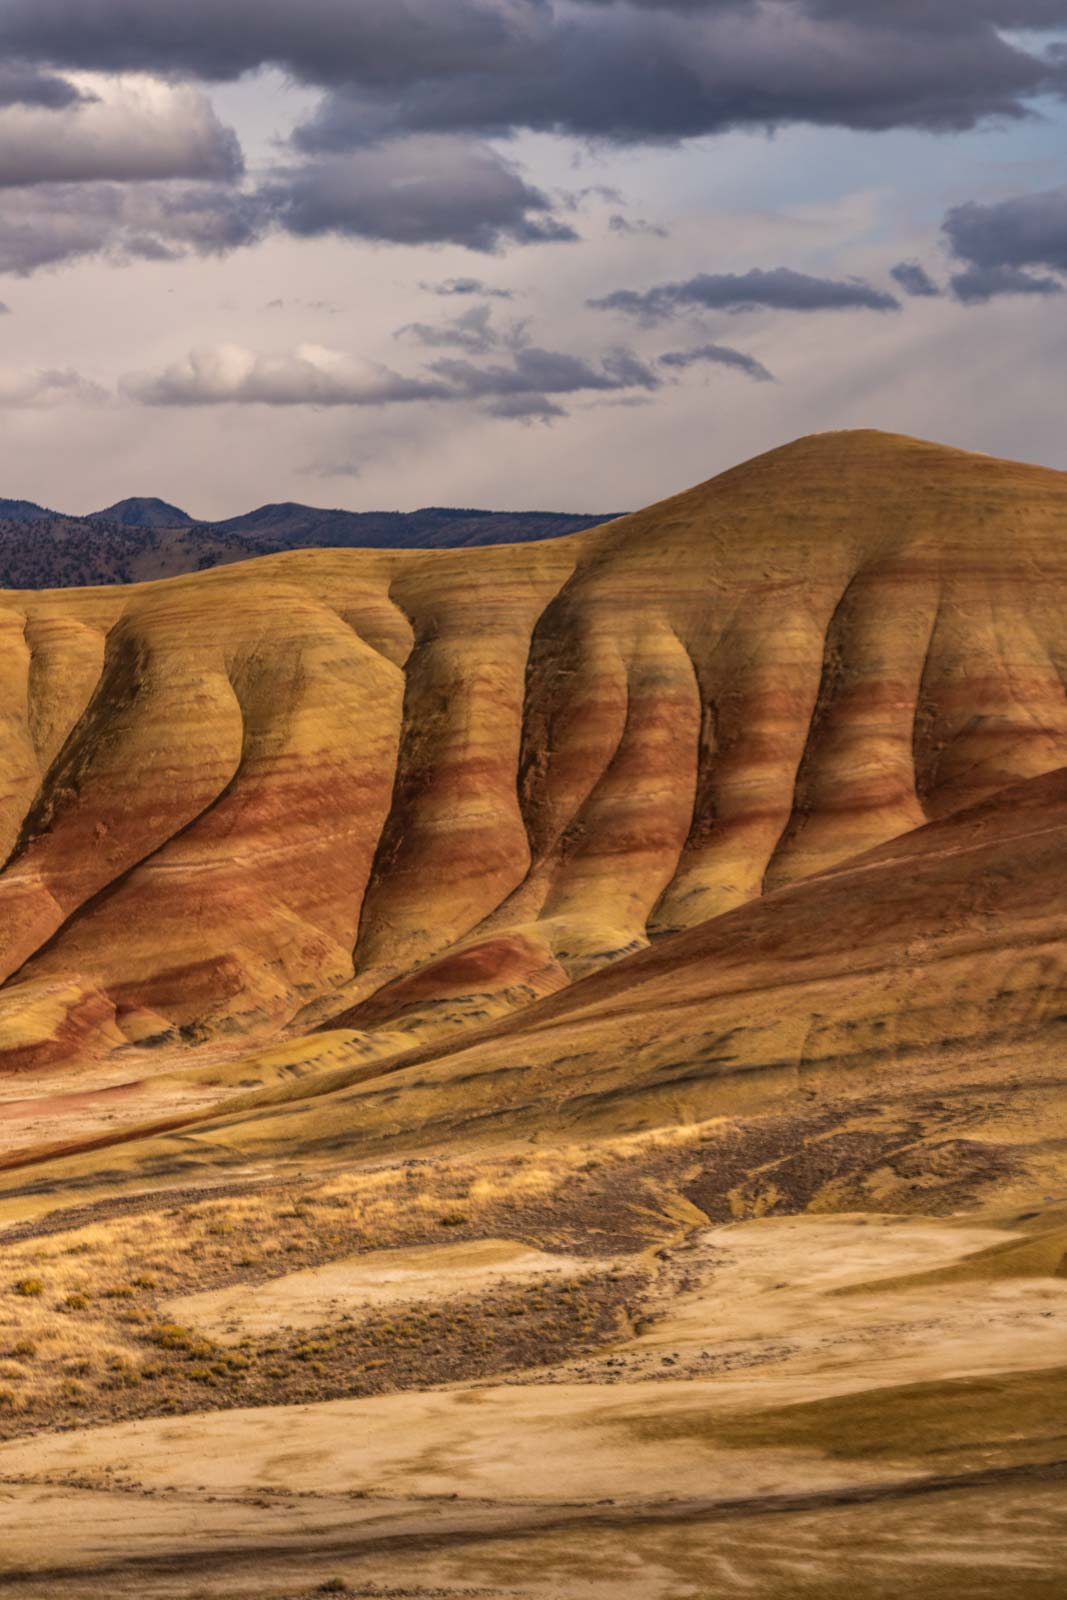 Exciting view of Painted Hills